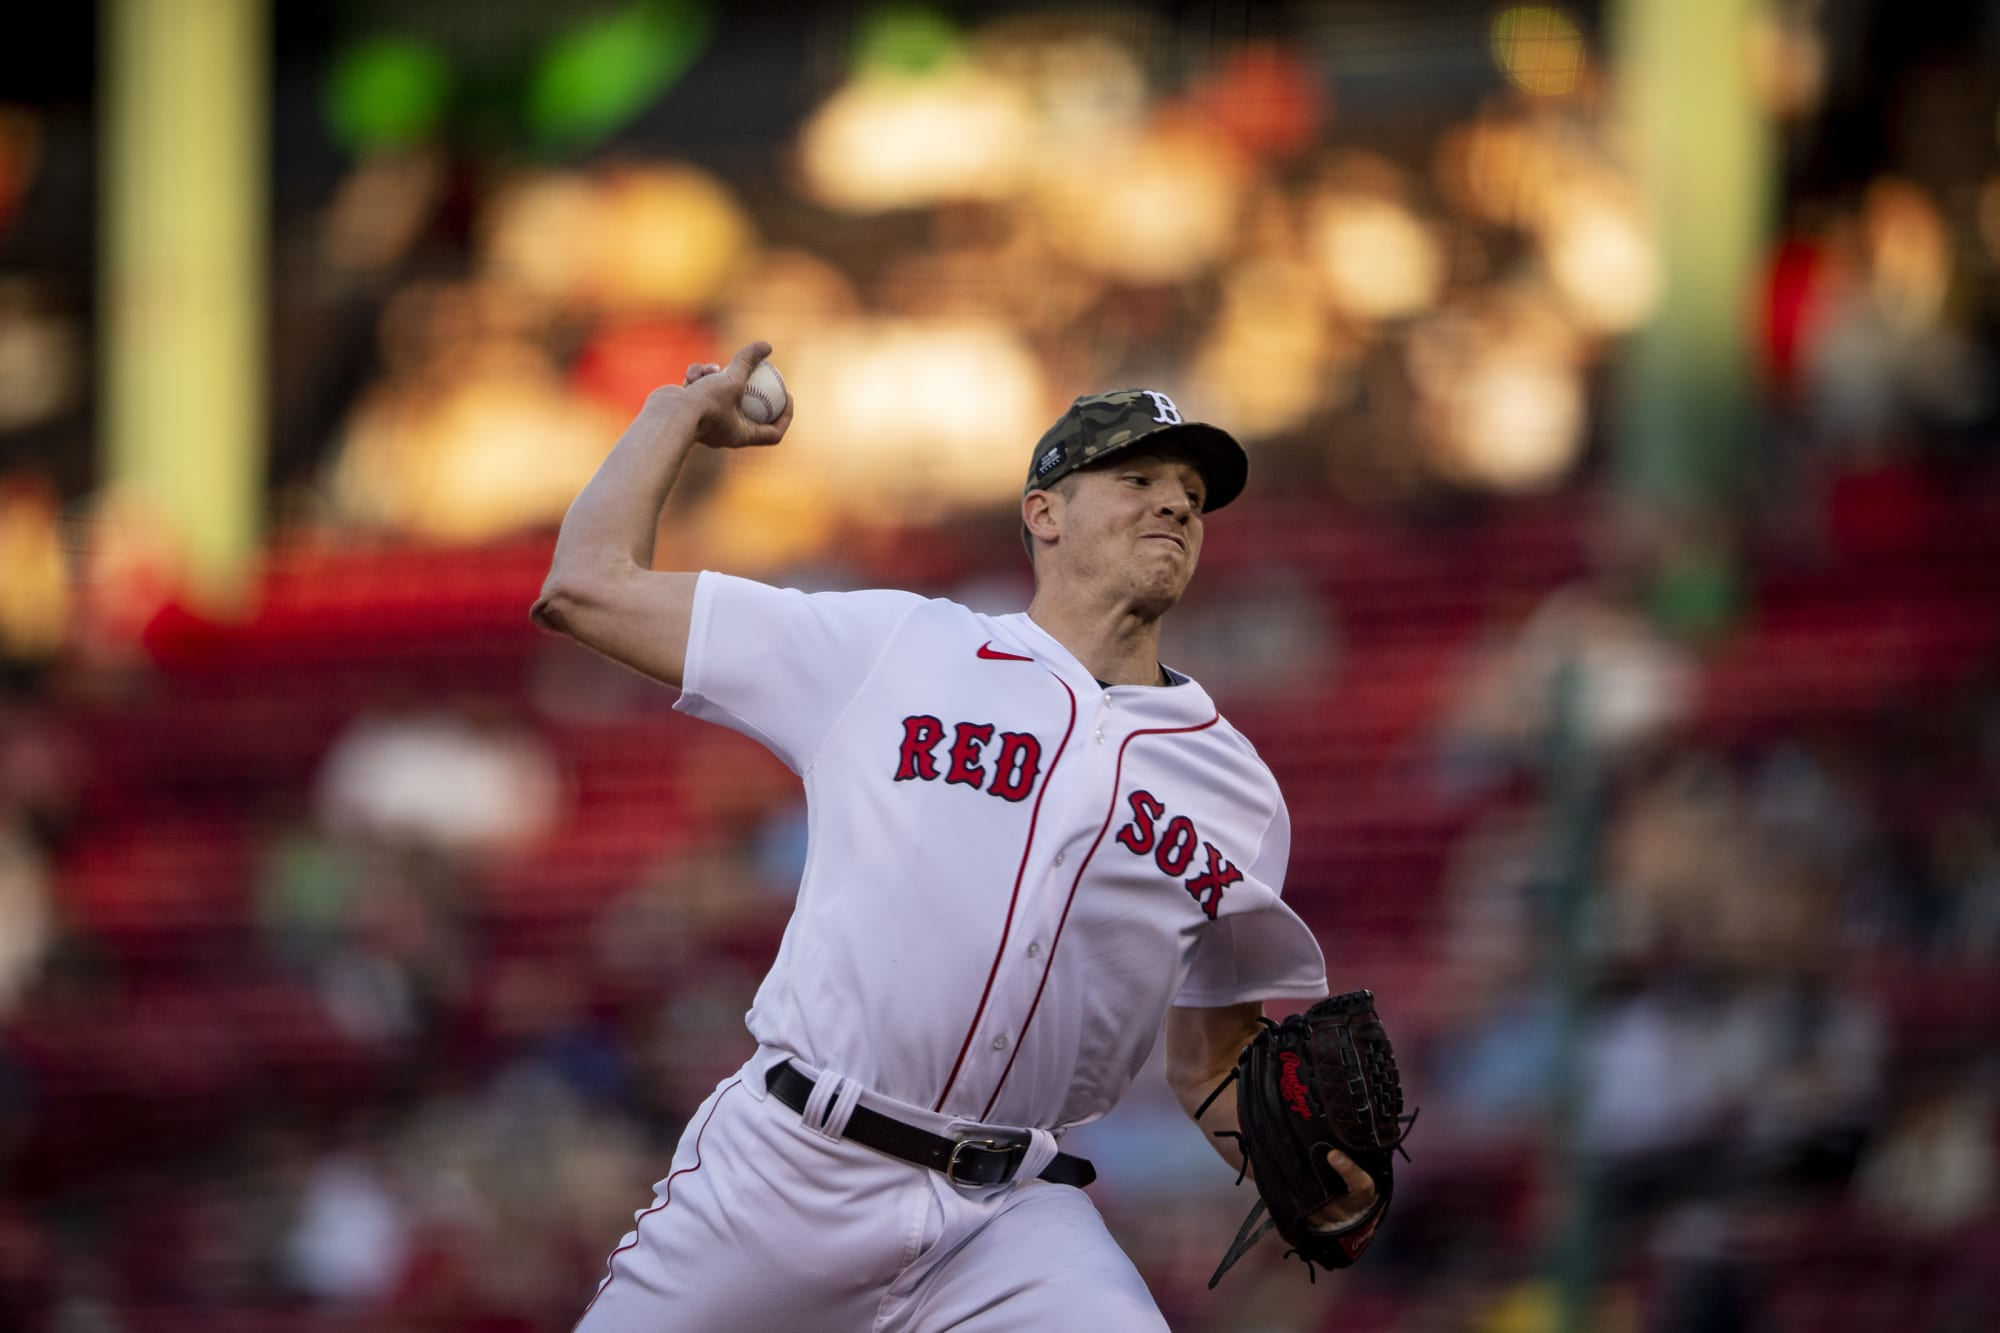 Boston Red Sox: Nick Pivetta coming up aces